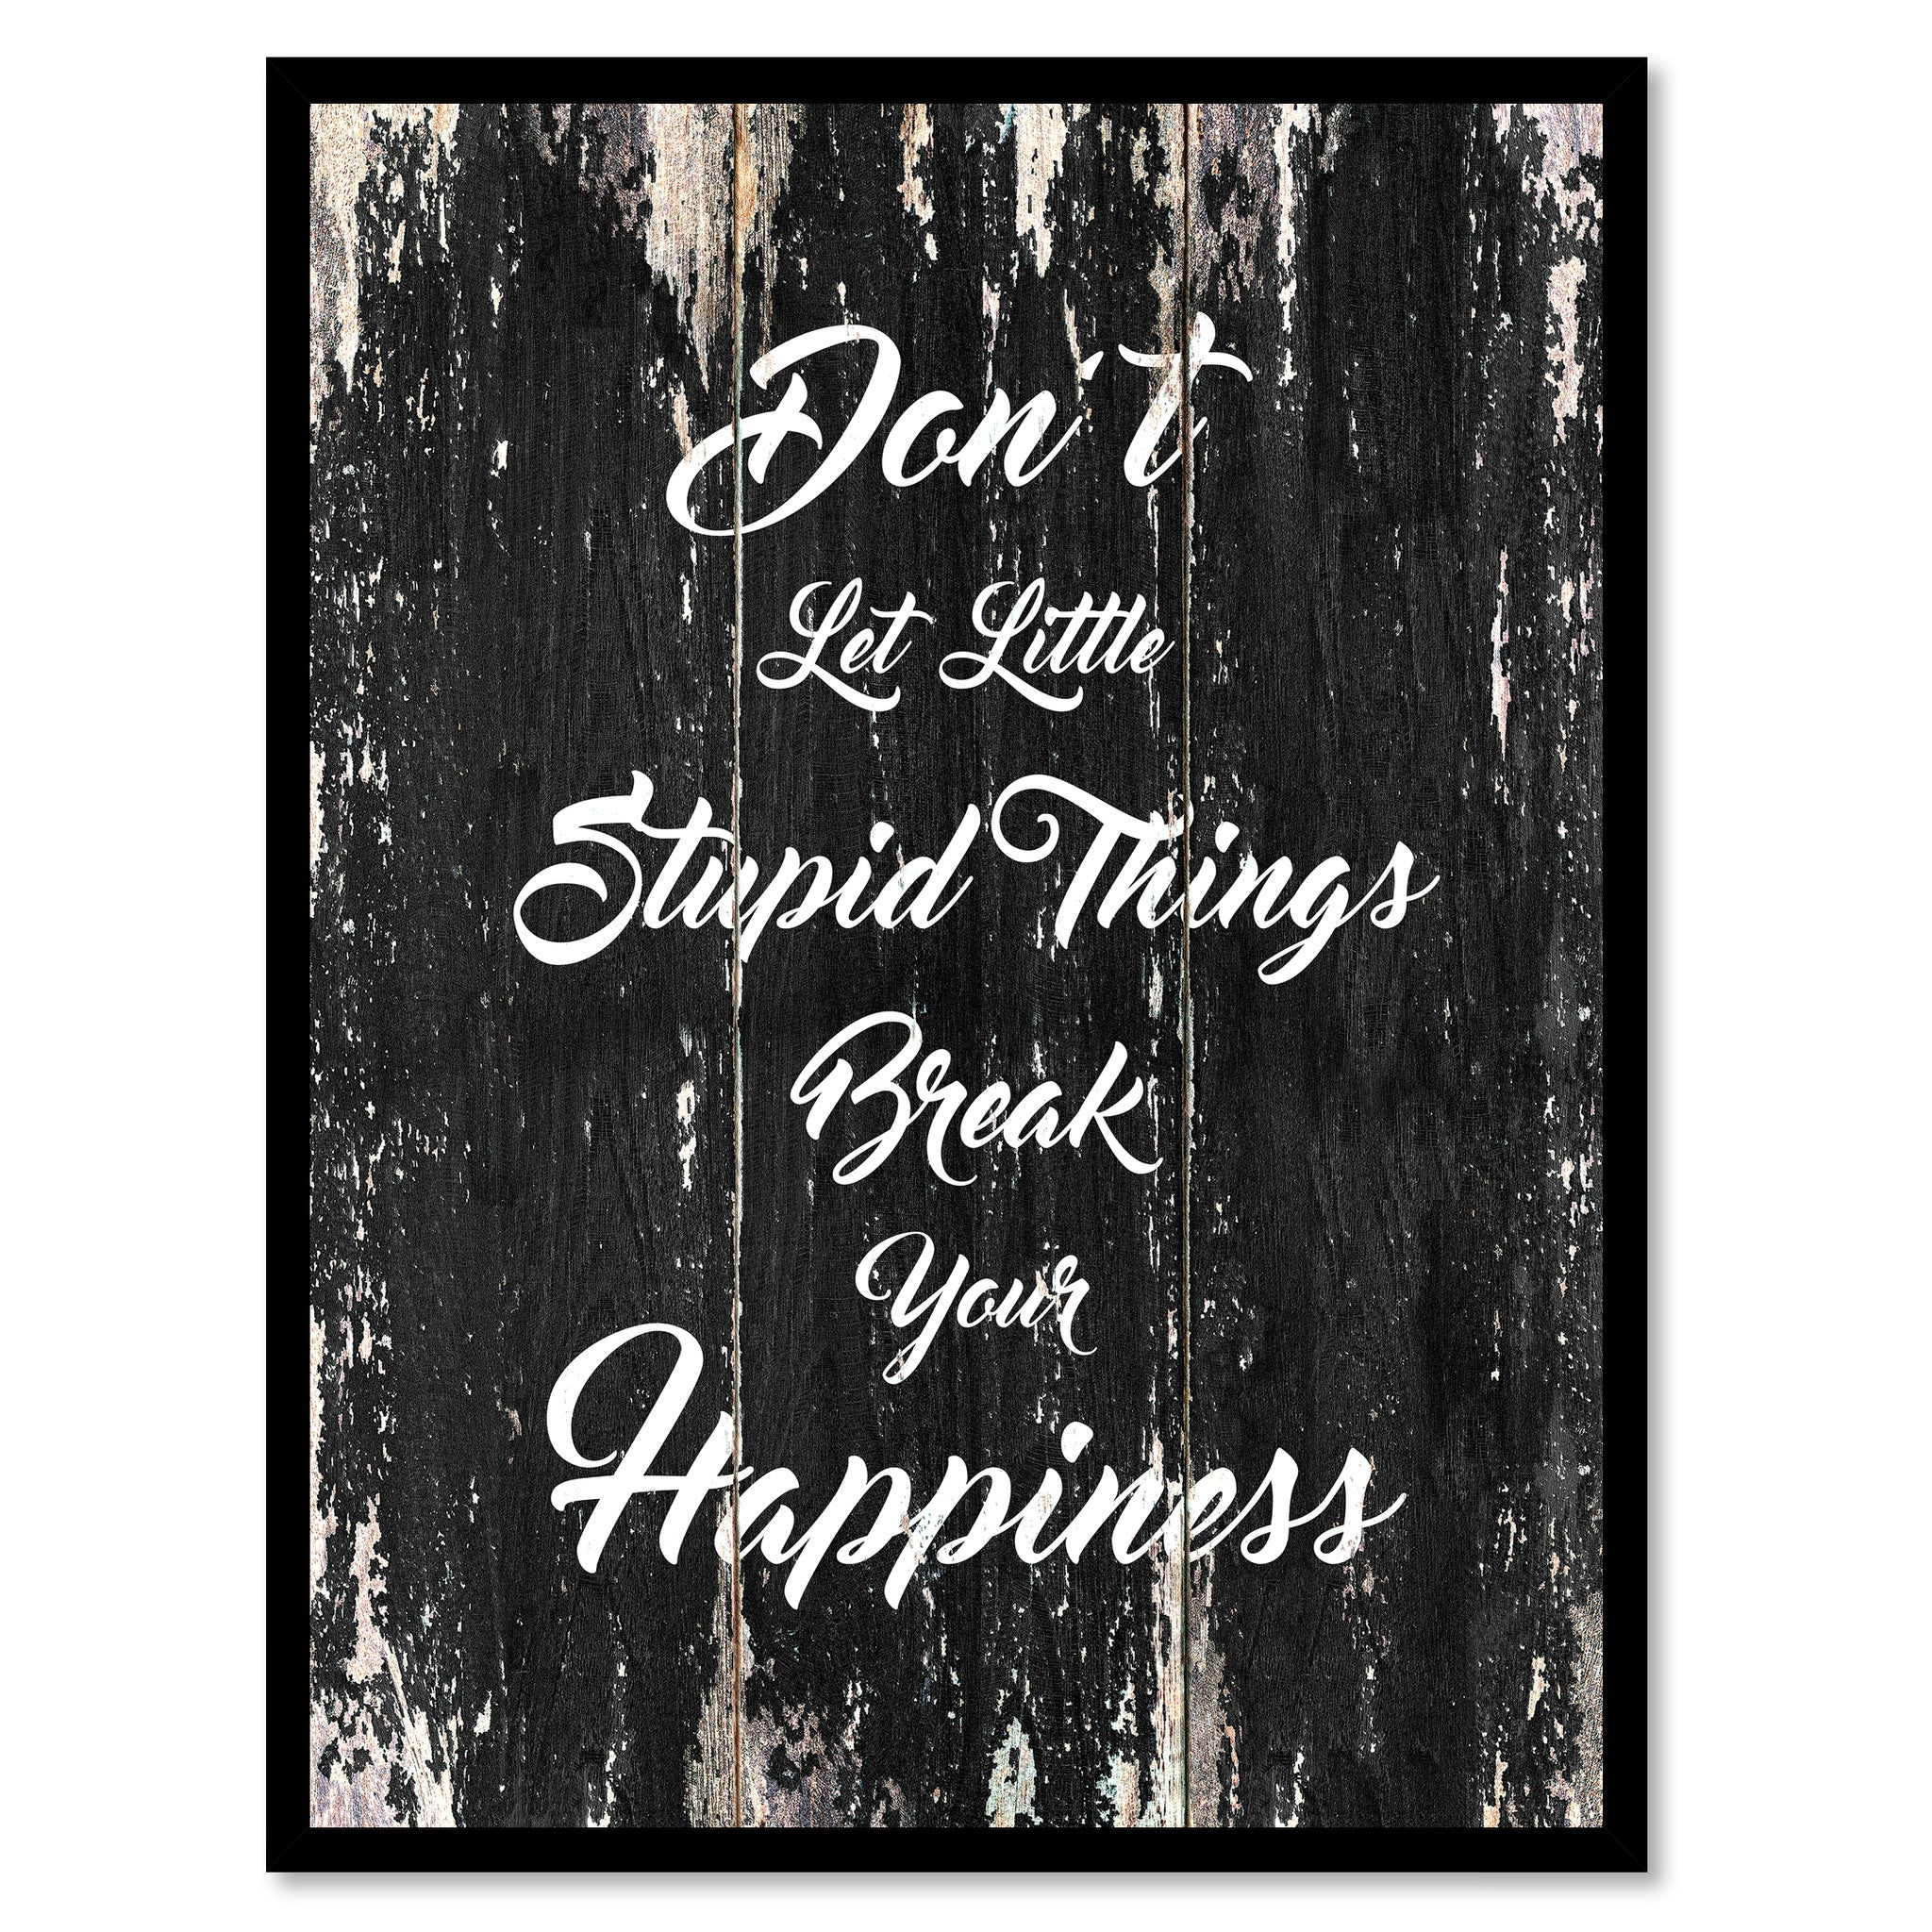 Don't let little stupid things break your happiness Motivational Quote Saying Canvas Print with Picture Frame Home Decor Wall Art